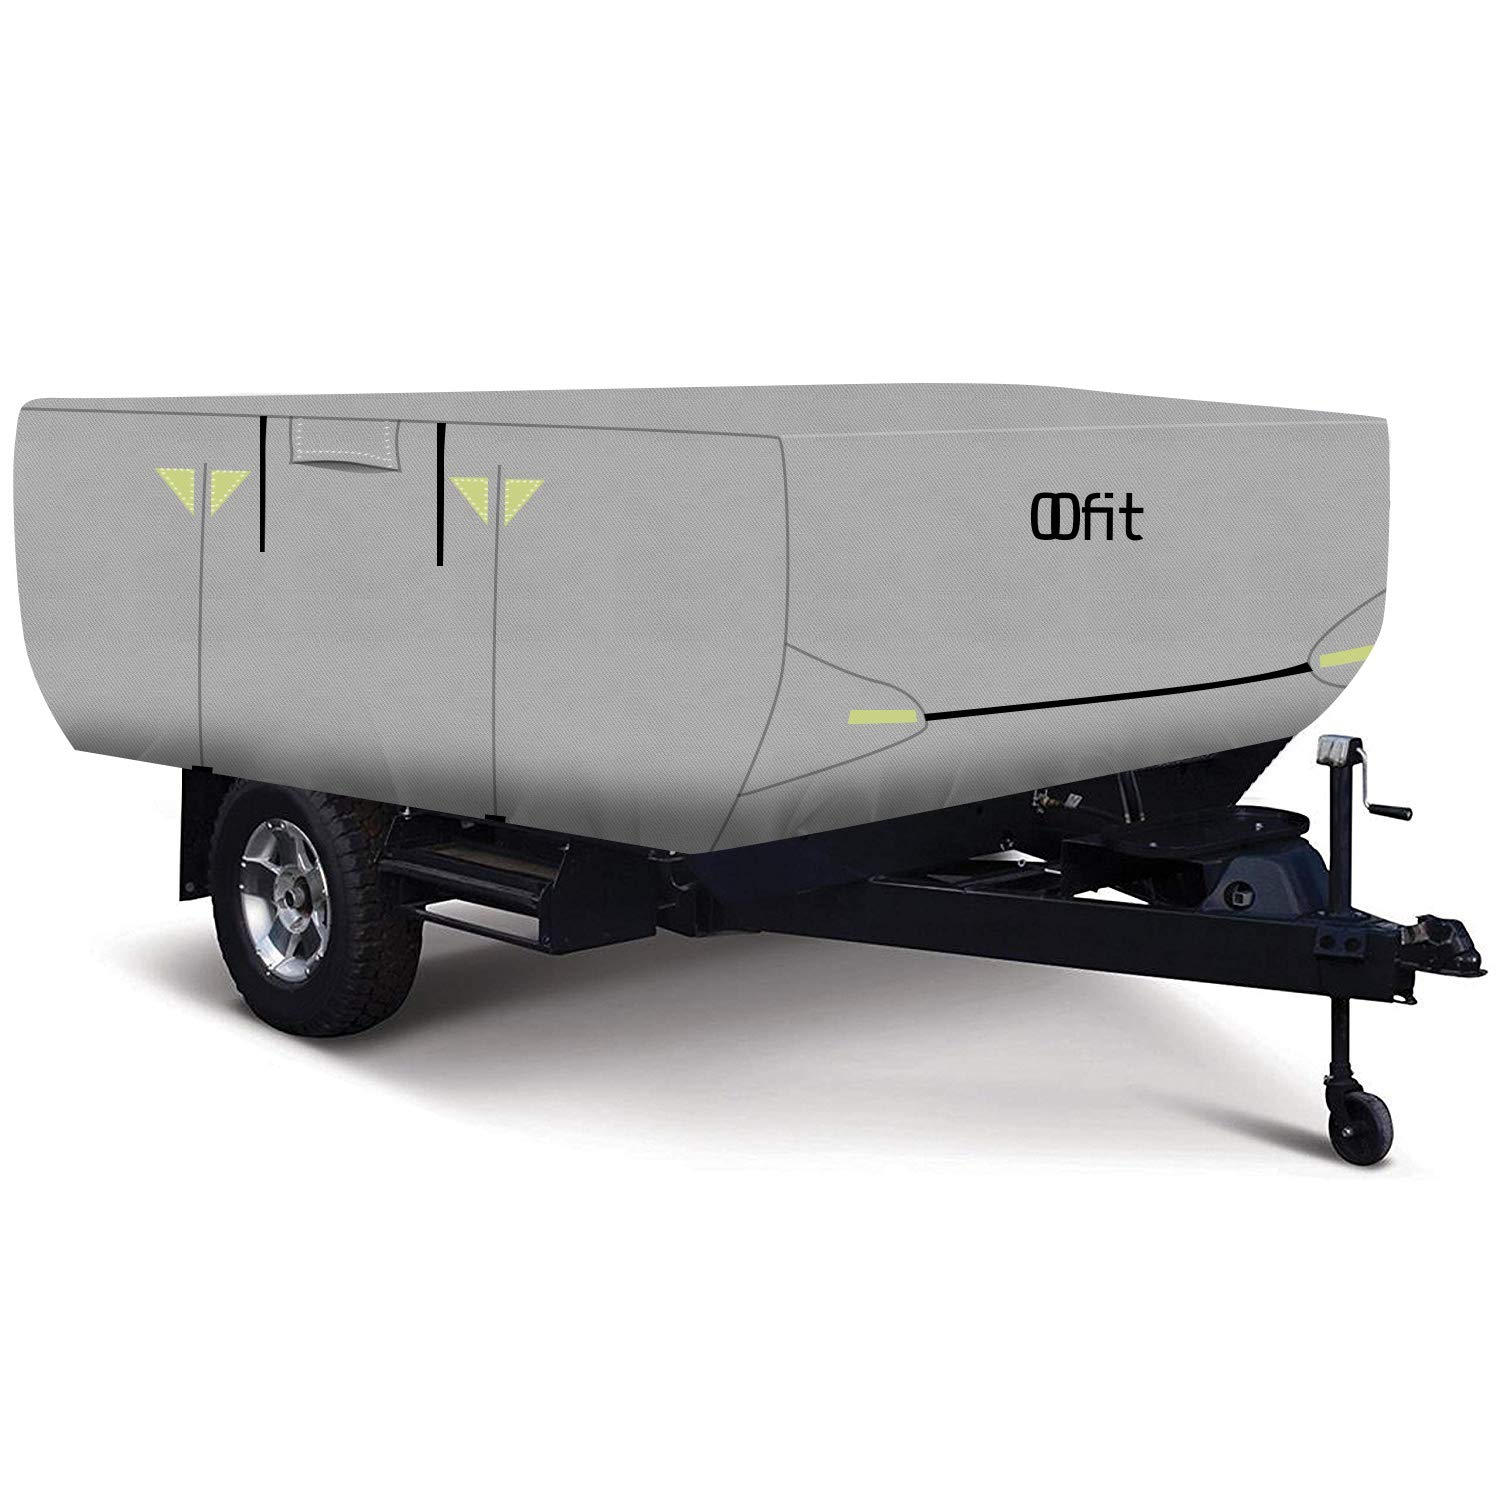 OOFIT 10' - 12' Folding Pop Up Camper Tent Trailer RV Cover - Breathable 4 Layers Non-Woven Fabric with Adhesive Repair Patch by OOFIT